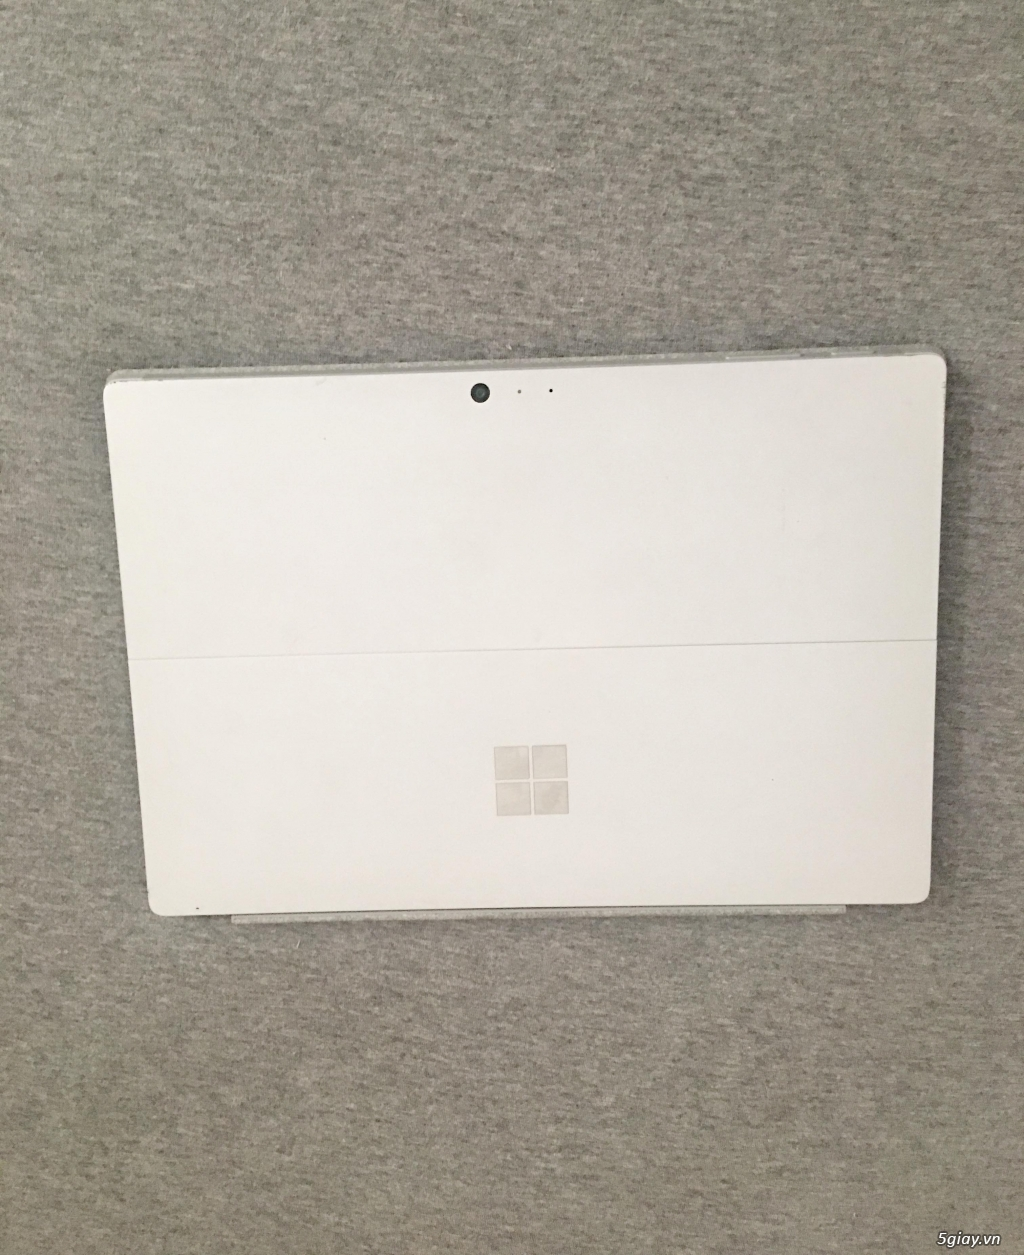 Surface Pro 4 i5/8GB/256 + type cover + mouse arc